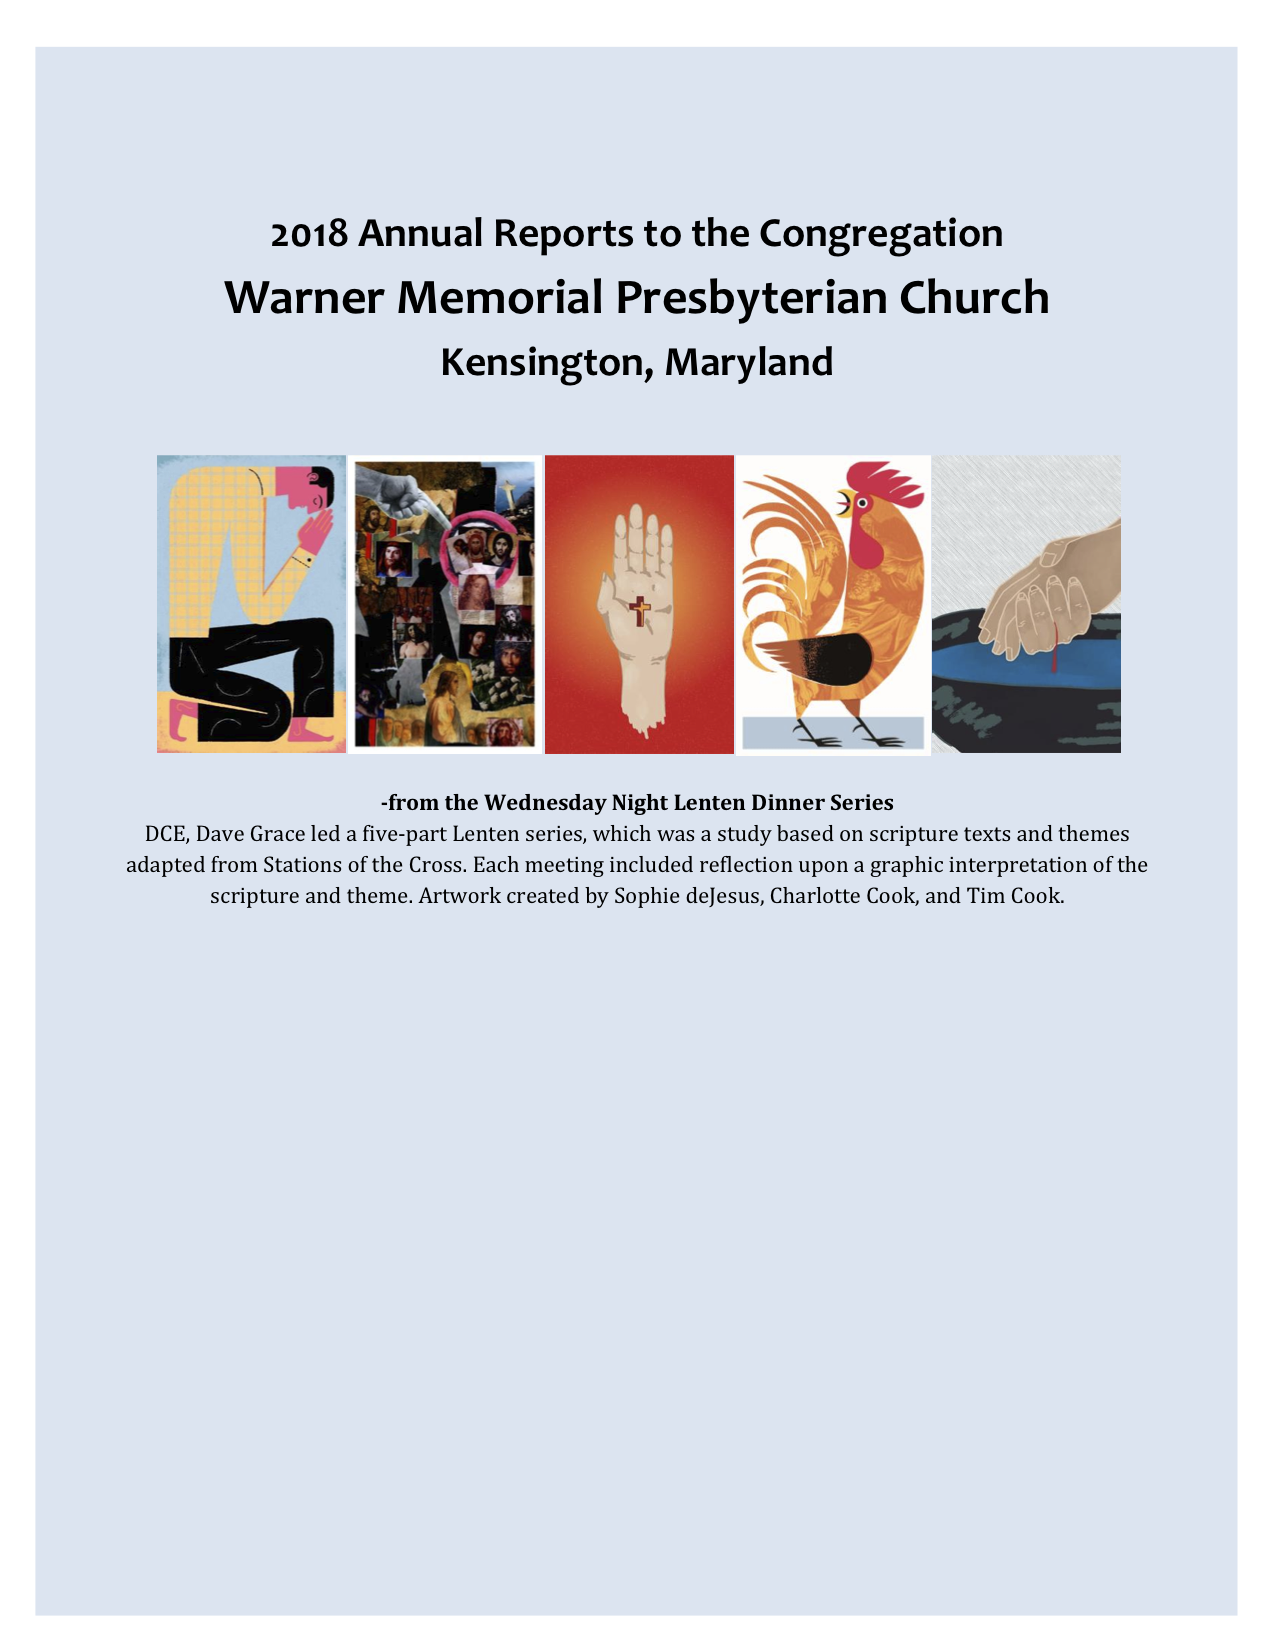 http://www.warnermemorial.org/uploads/2018-WARNER-ANNUAL-REPORT.png